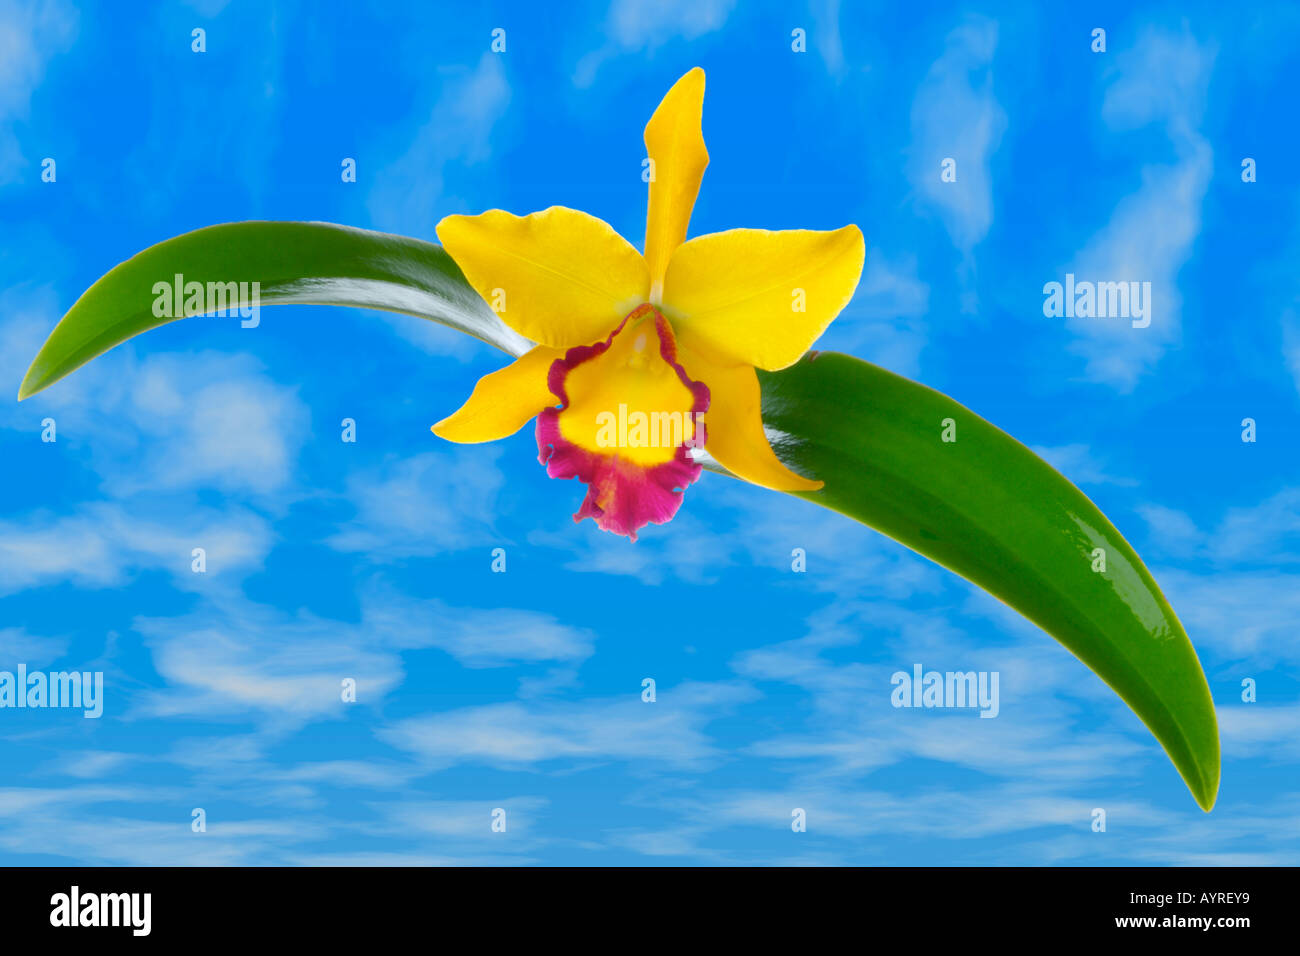 A brightly colored Thai yellow Netrasiri cattleya orchid - Stock Image